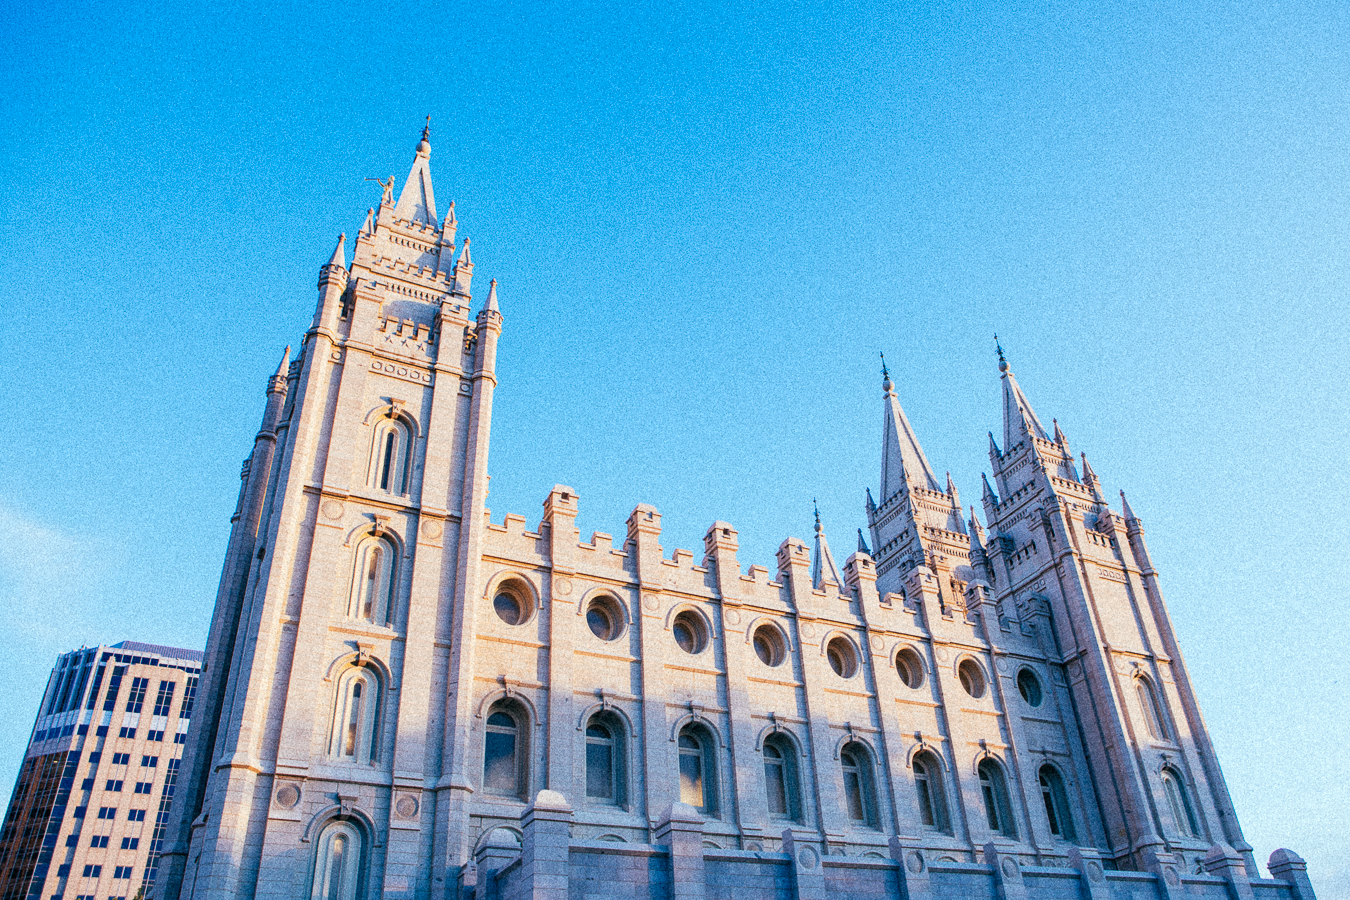 When many people think of SLC they typically relate it to the large Mormon community there.